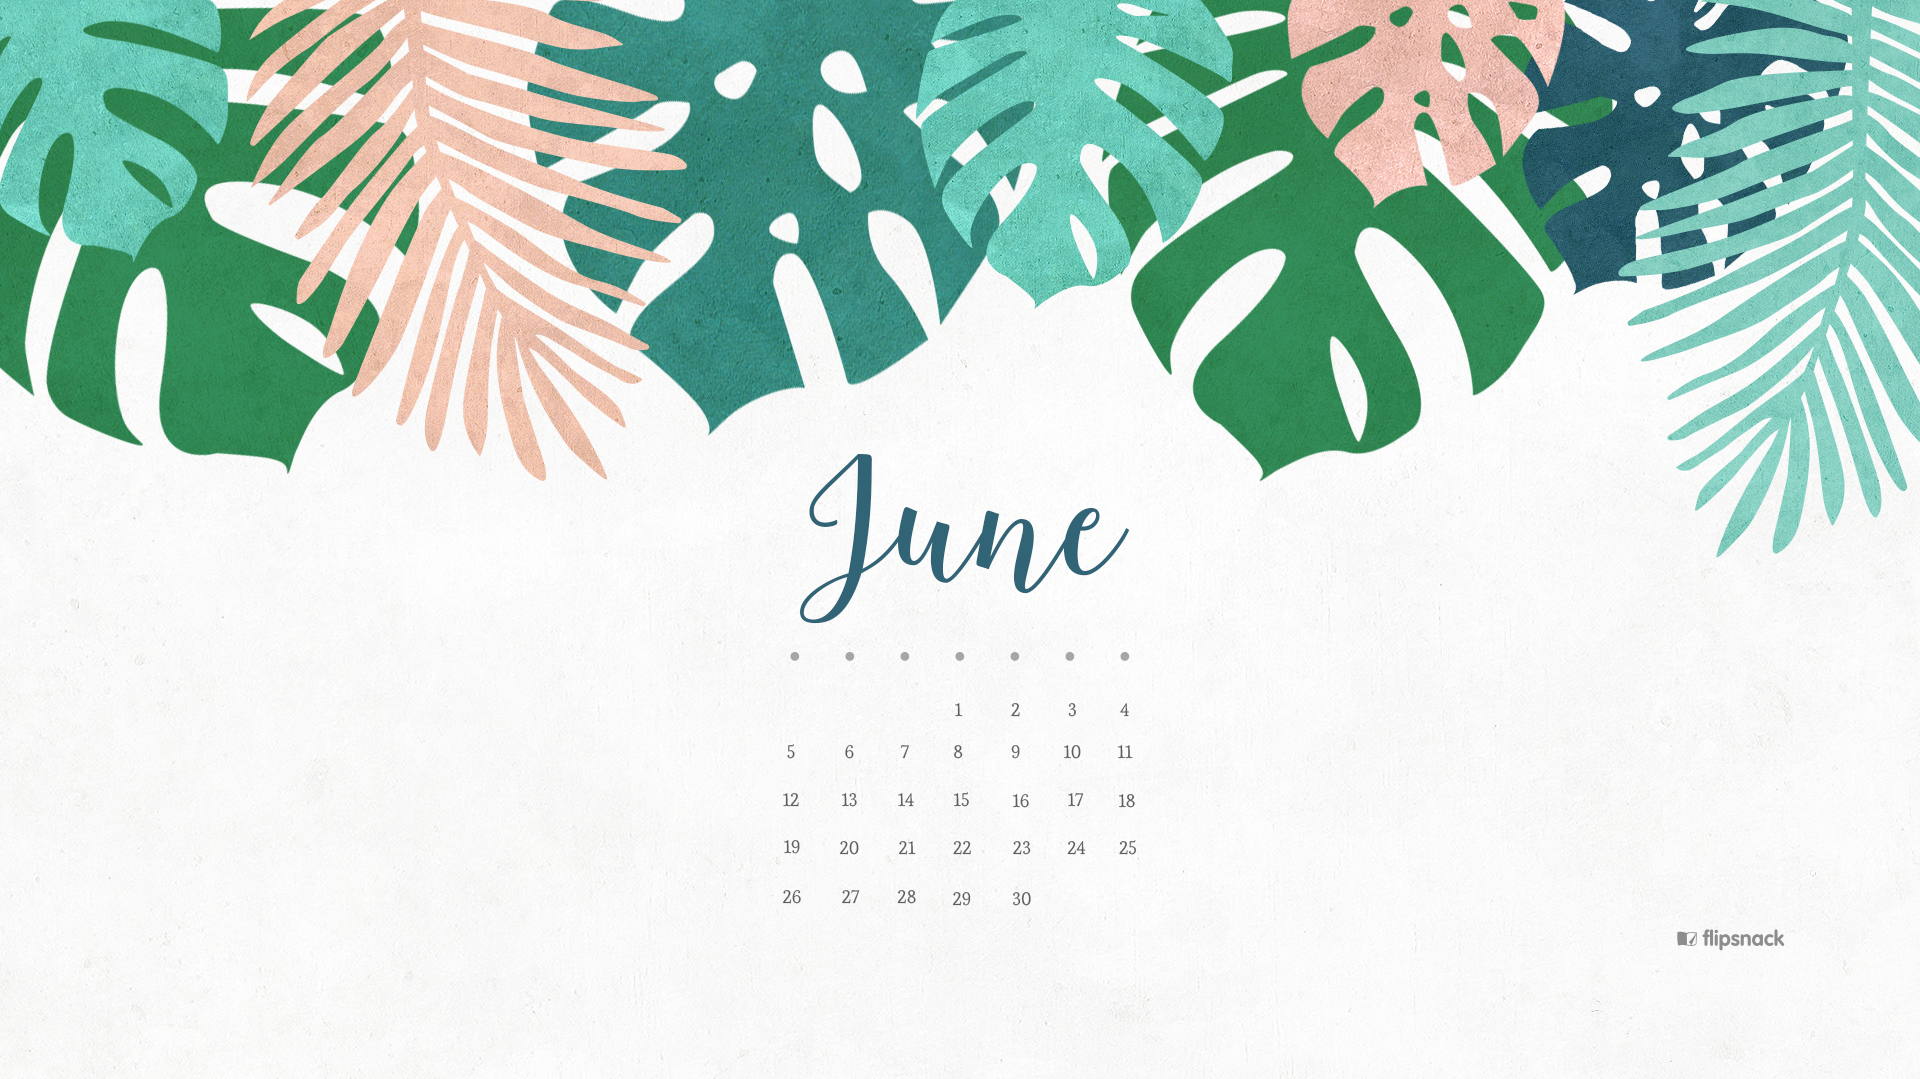 June 2018 Desktop Calendar